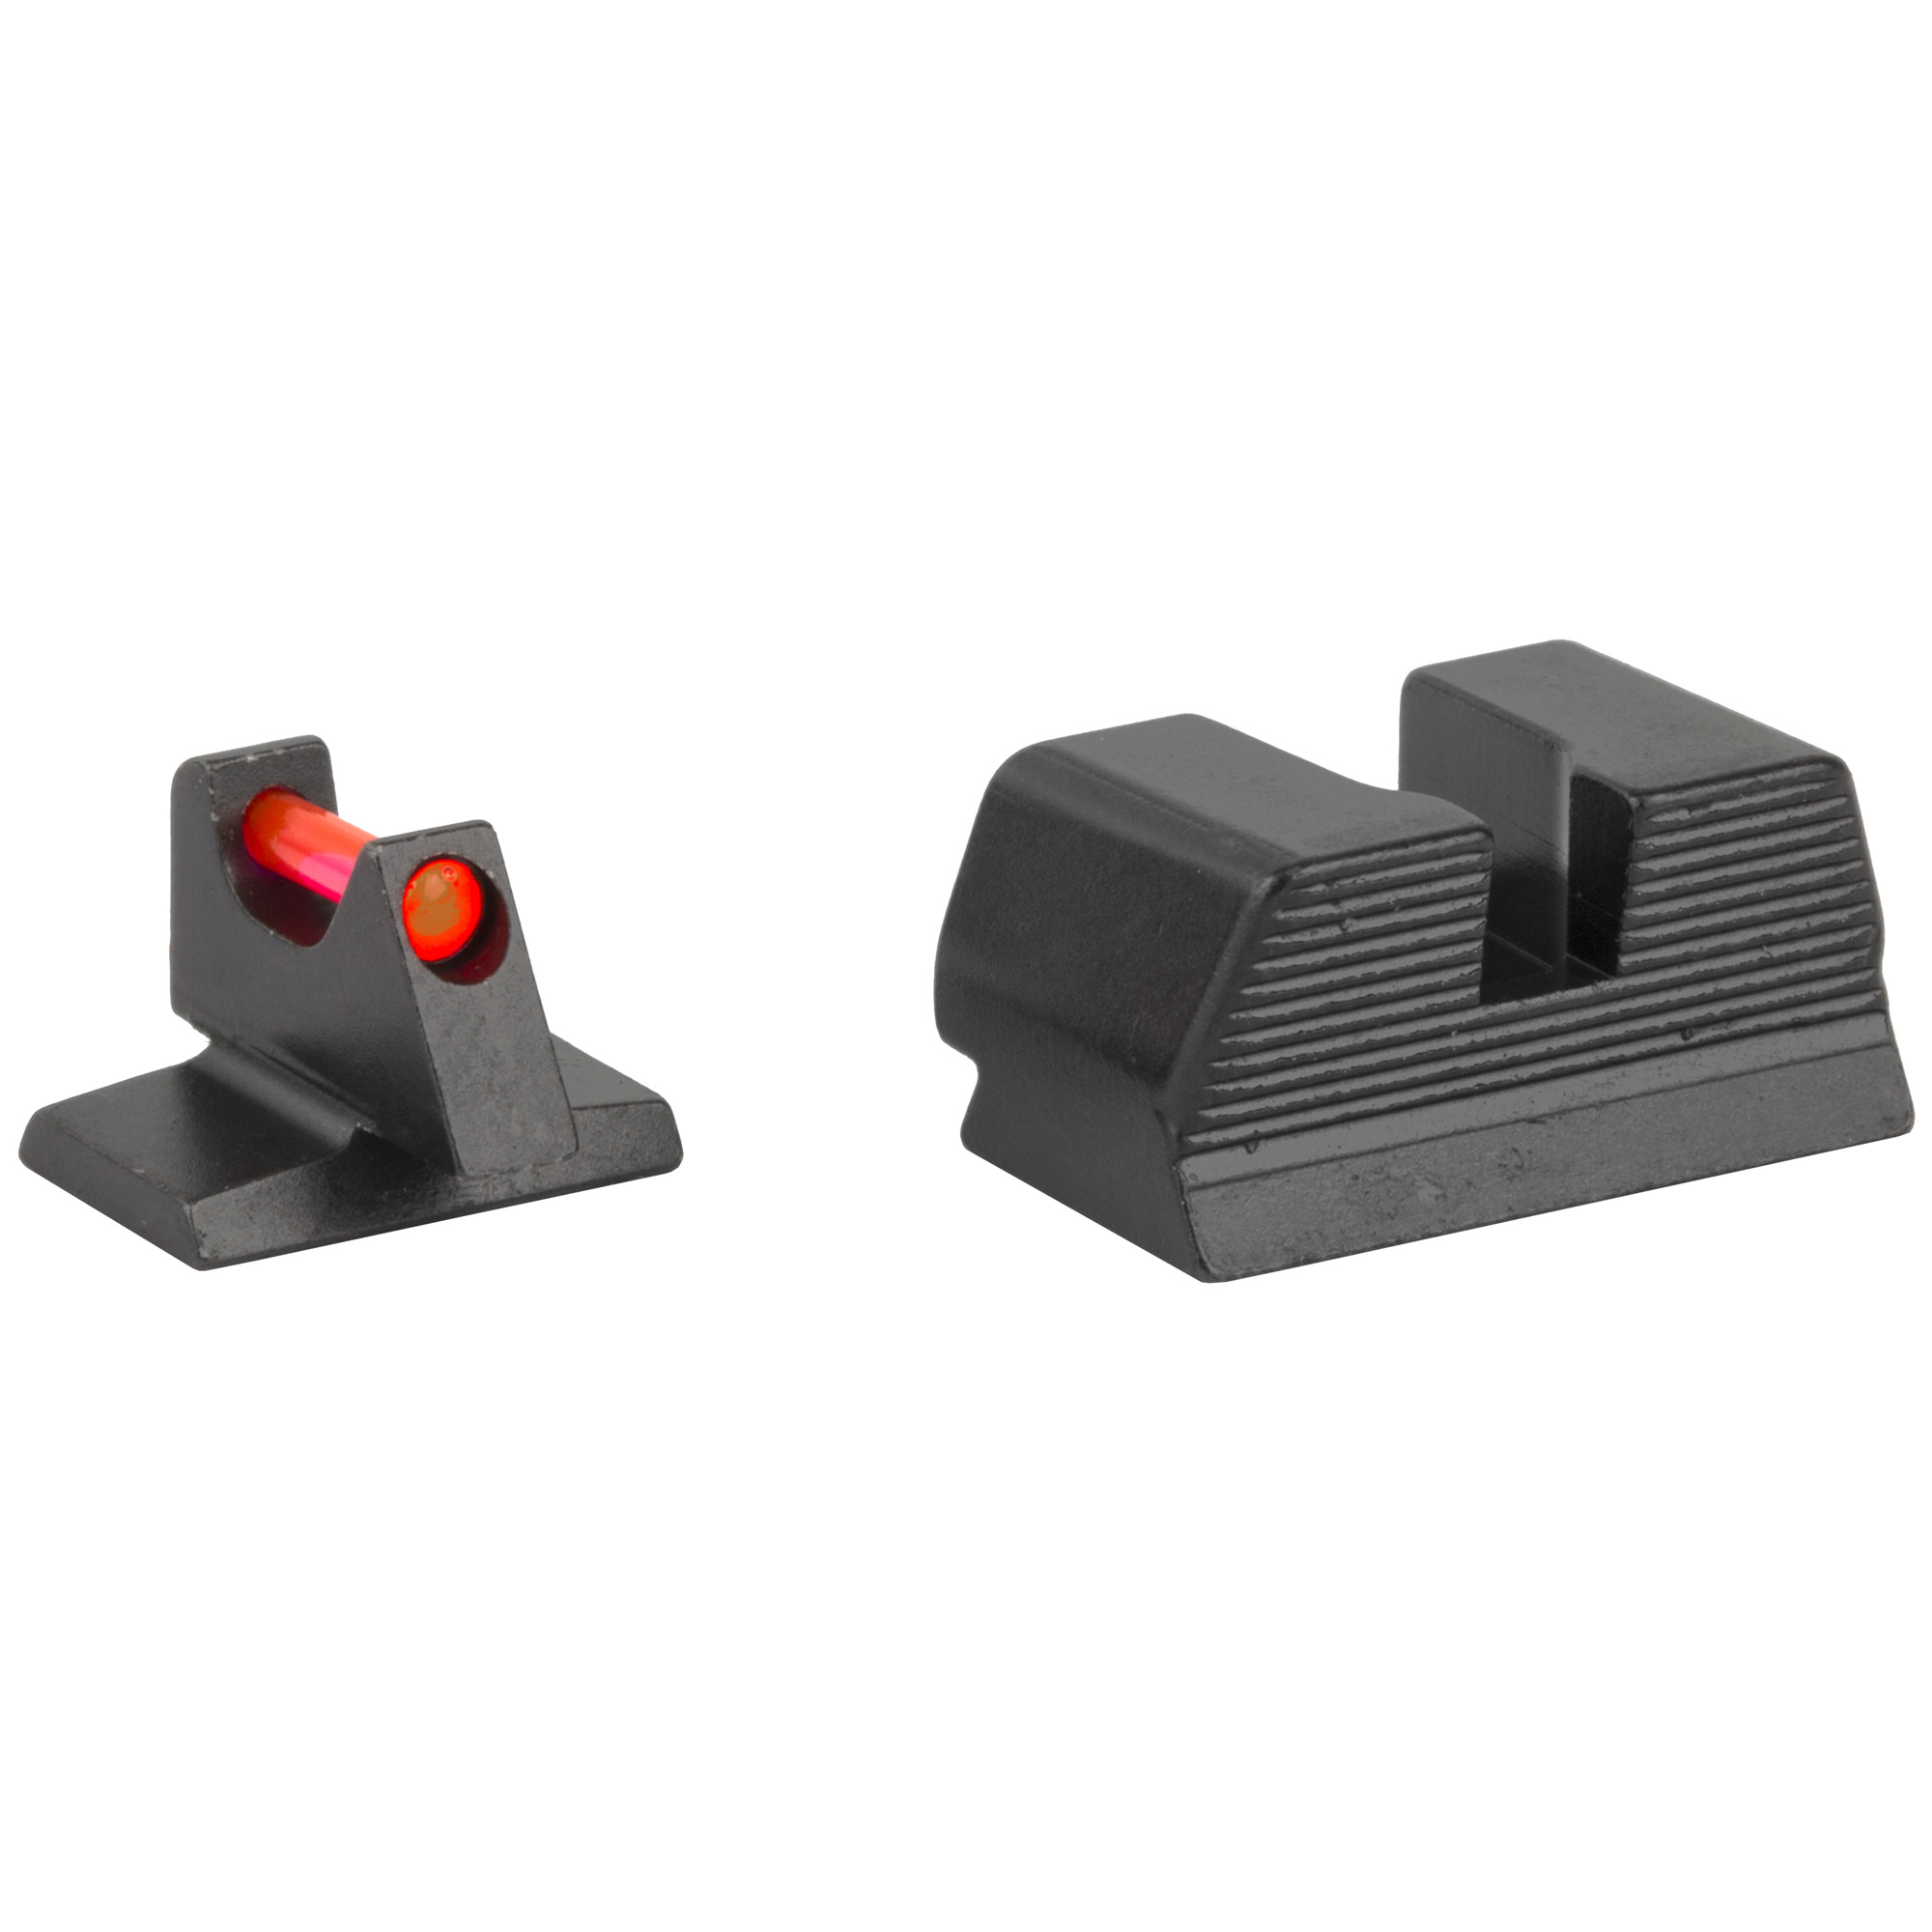 "Trijicon(R) Fiber Sight Set - for FNH(R) Pistols: Behind Trijicon(R) Fiber Sights is years of engineering and manufacturing experience in producing the industry's leading night sight and fiber illuminated scopes and sights. Featuring similar fiber optic materials used in several Trijicon(R) fiber optic scopes and sights"" including the battle-proven ACOG(R)"" the Trijicon(R) Fiber Sights are purposely engineered to bring the absolute brightest aiming point while retaining strength and maintaining a refined sight picture. Whether carrying or competing"" these bright"" thin sights create the perfect aiming point for fast"" accurate rounds on target."